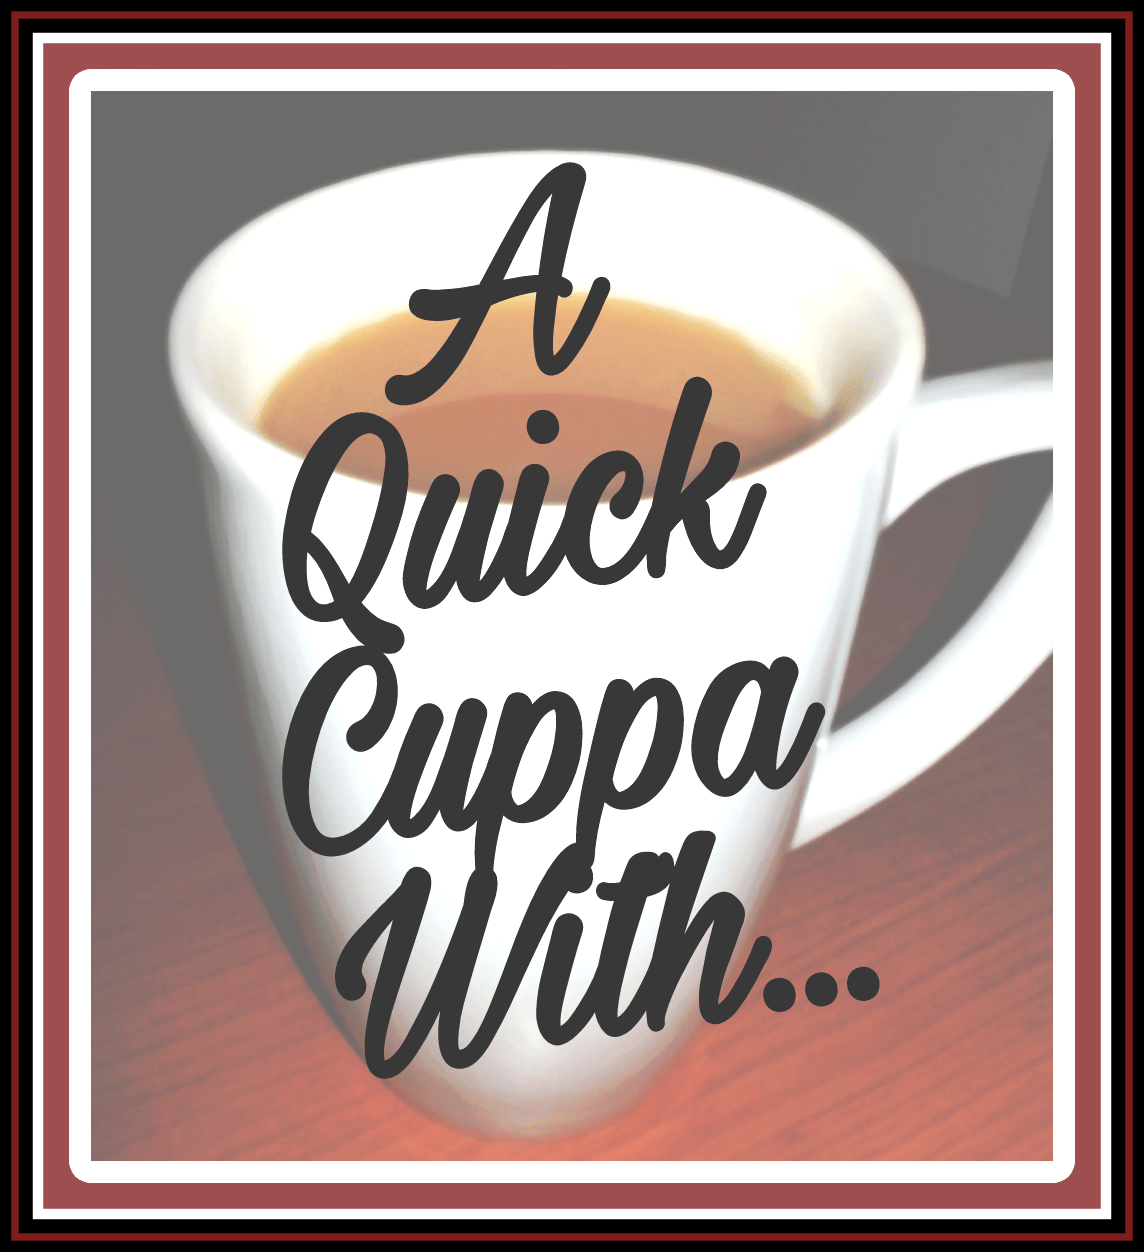 A Quick Cuppa With… Ready For A Cuppa!